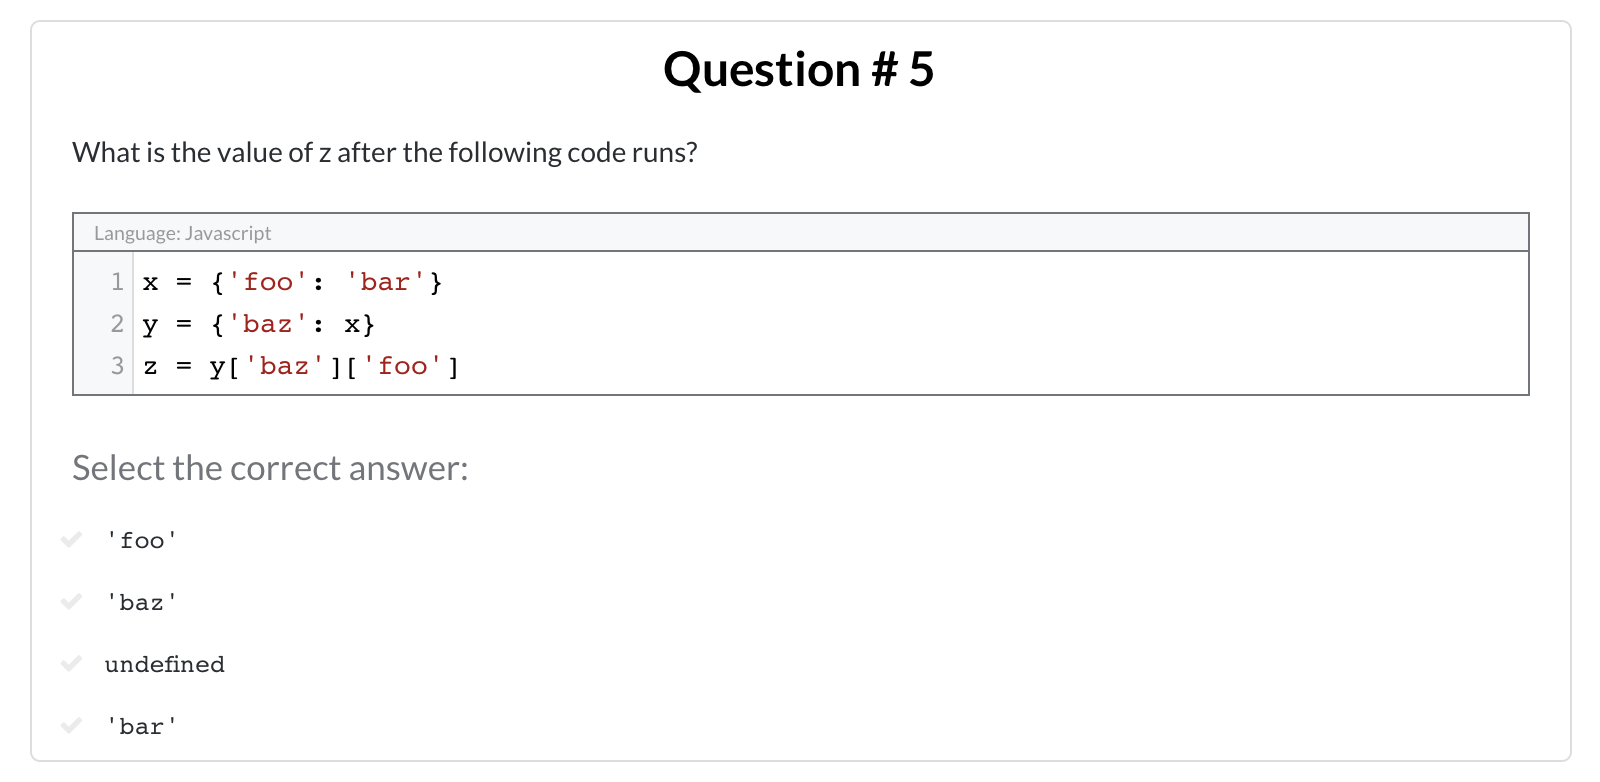 Question 5 of 5: What is the value of z after the following code runs?